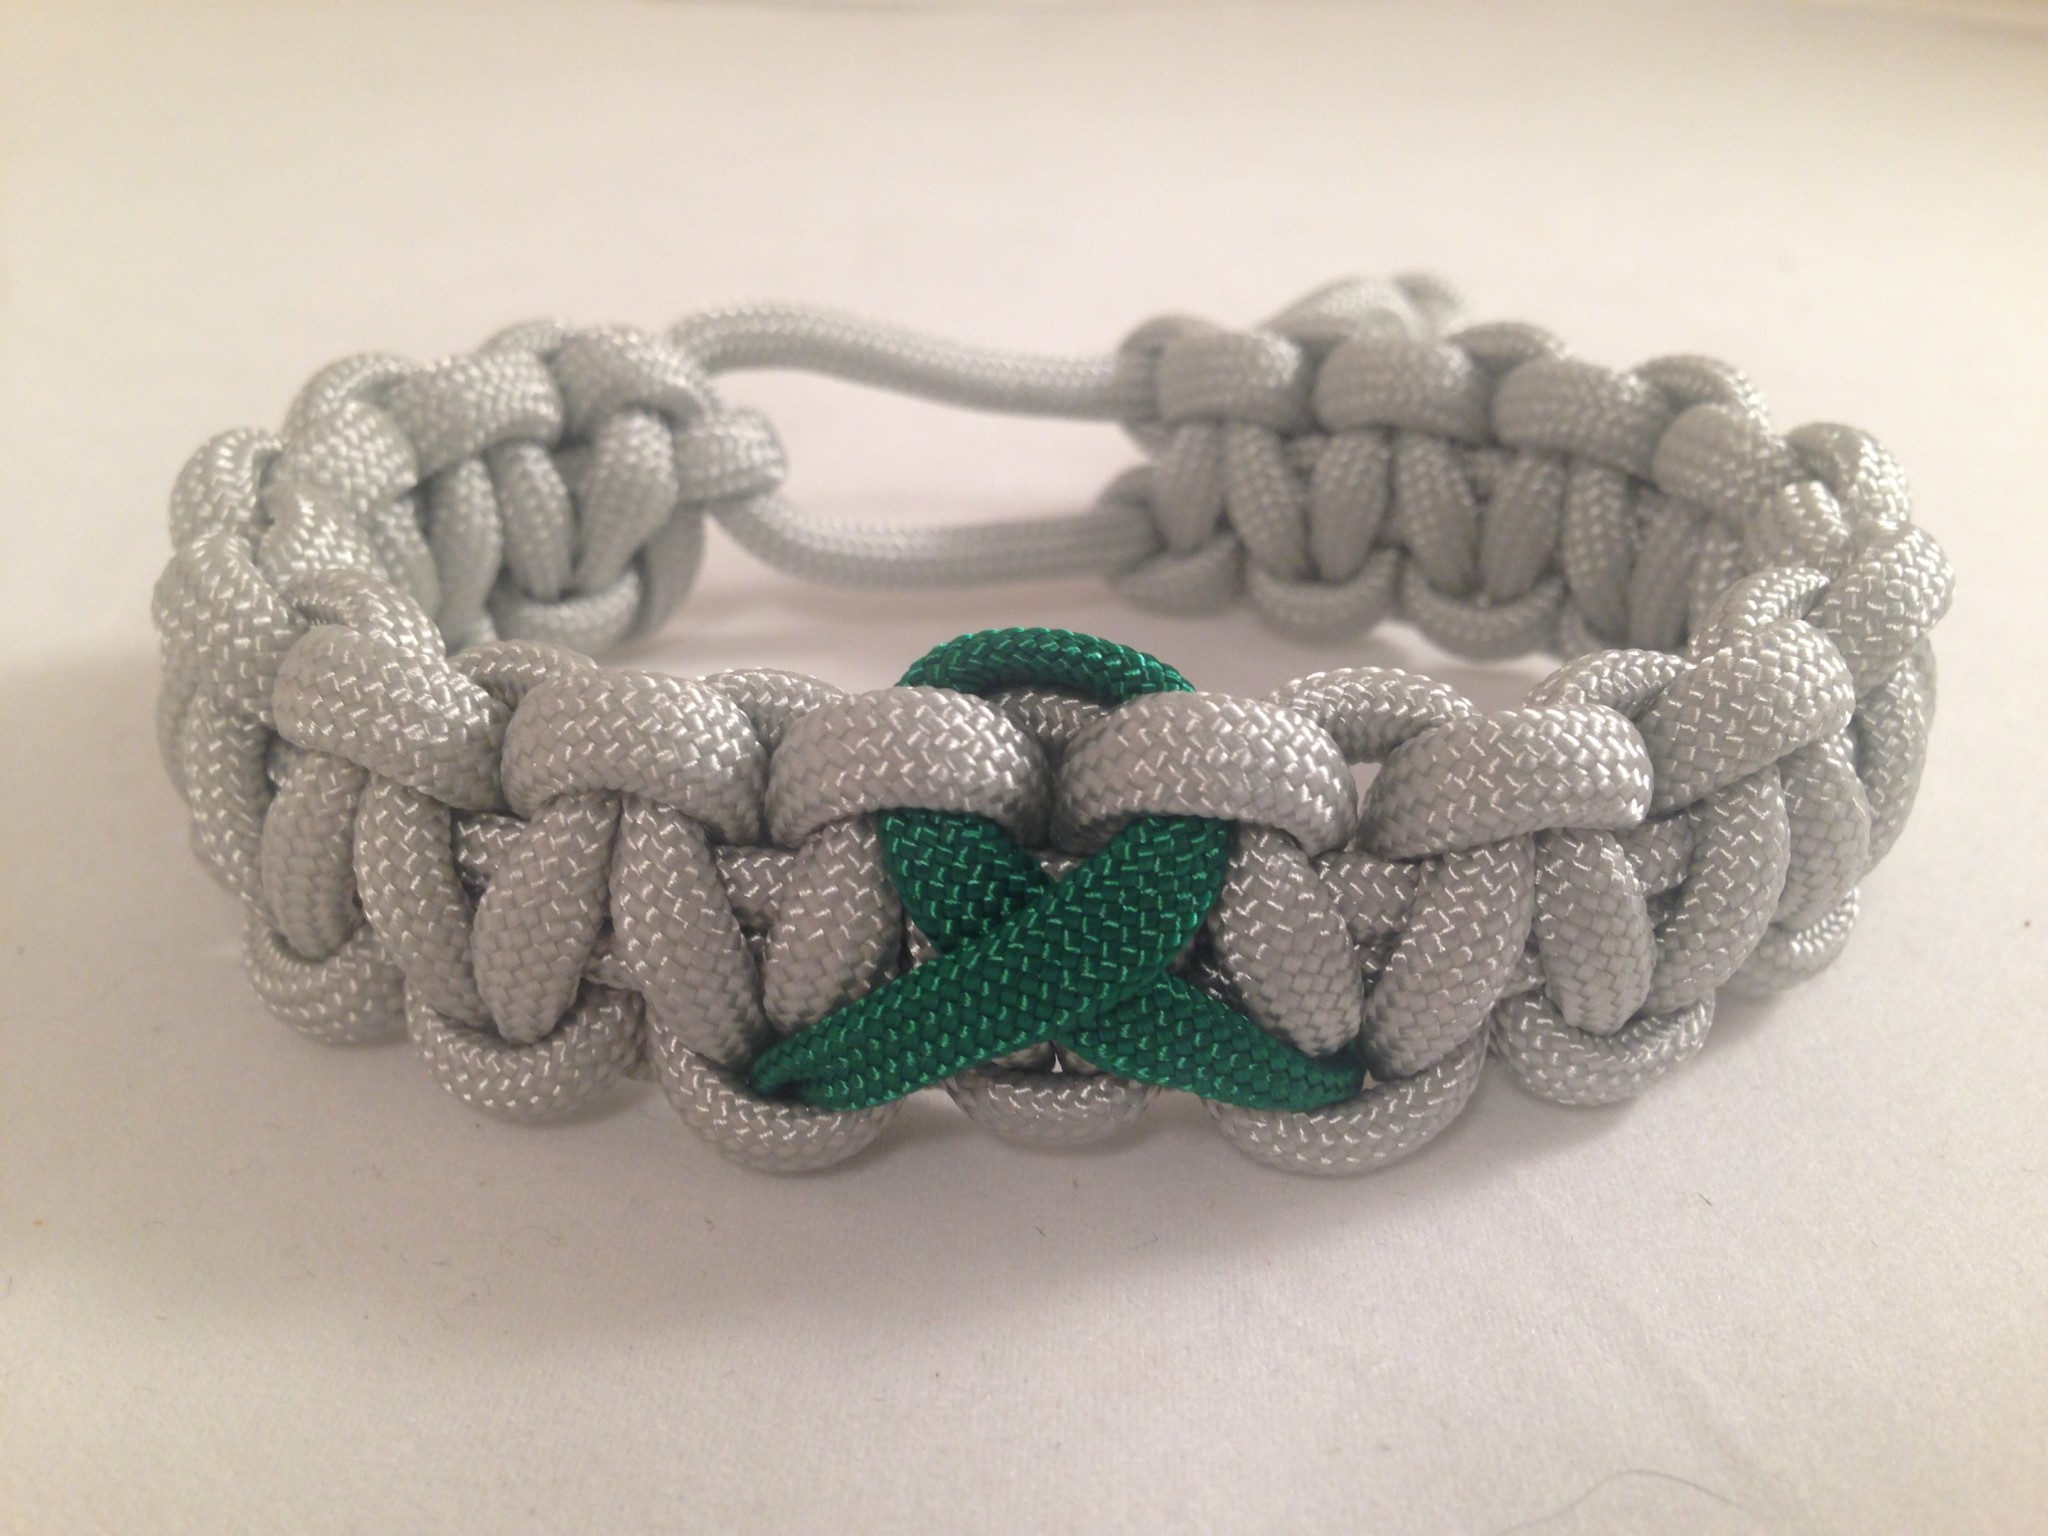 The Organ Donation Awareness Bracelet Silver Gray Paracord Band With